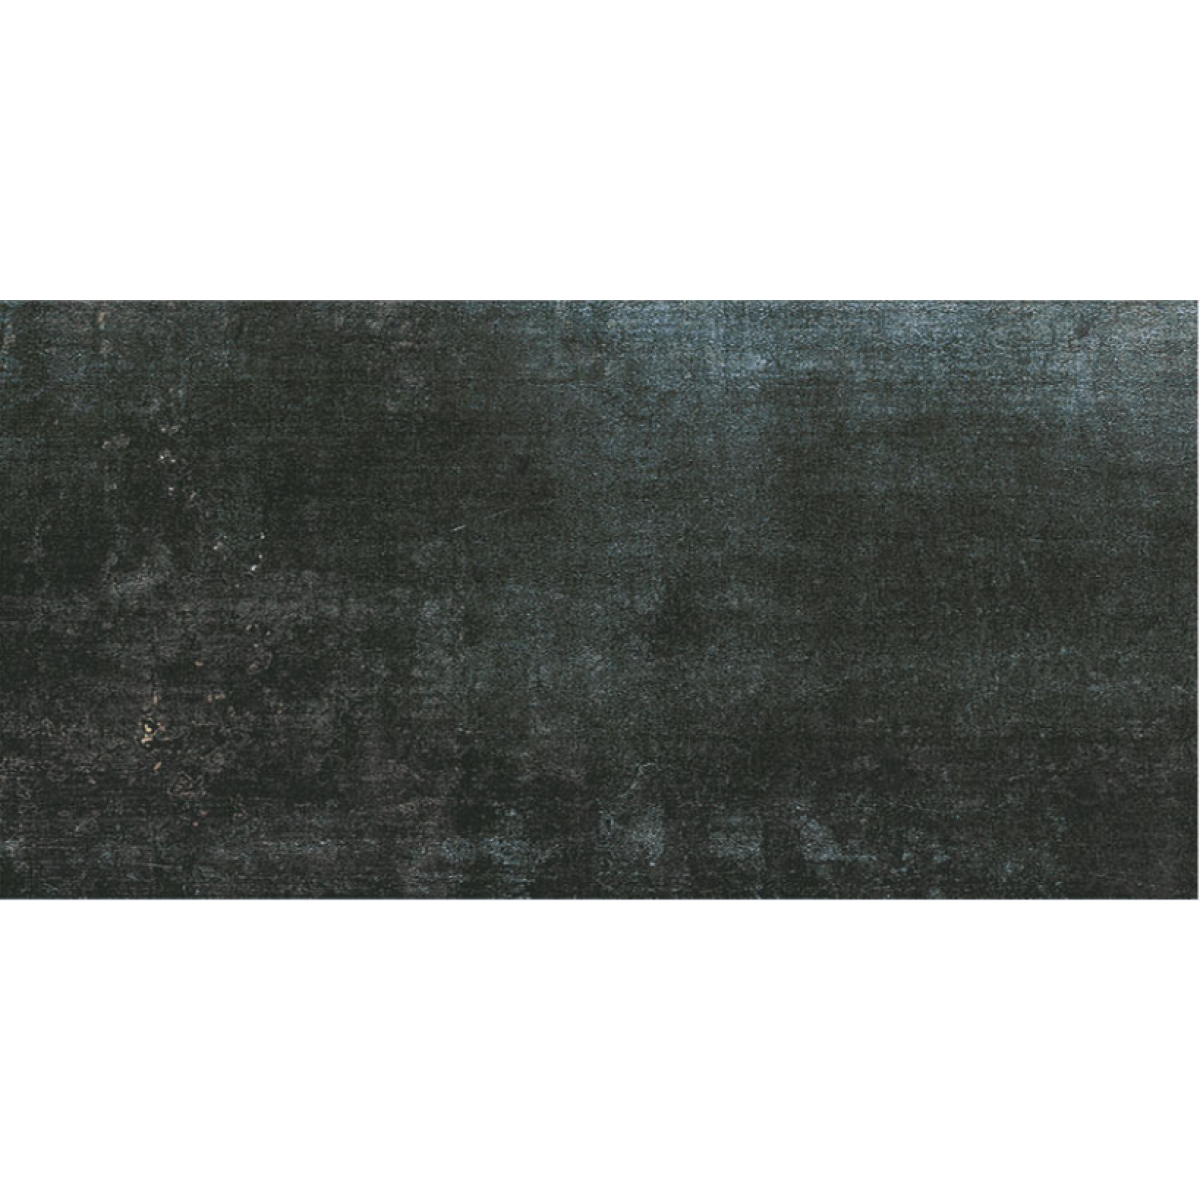 Rock Dark, Lapatto, 1200x600x11 mm